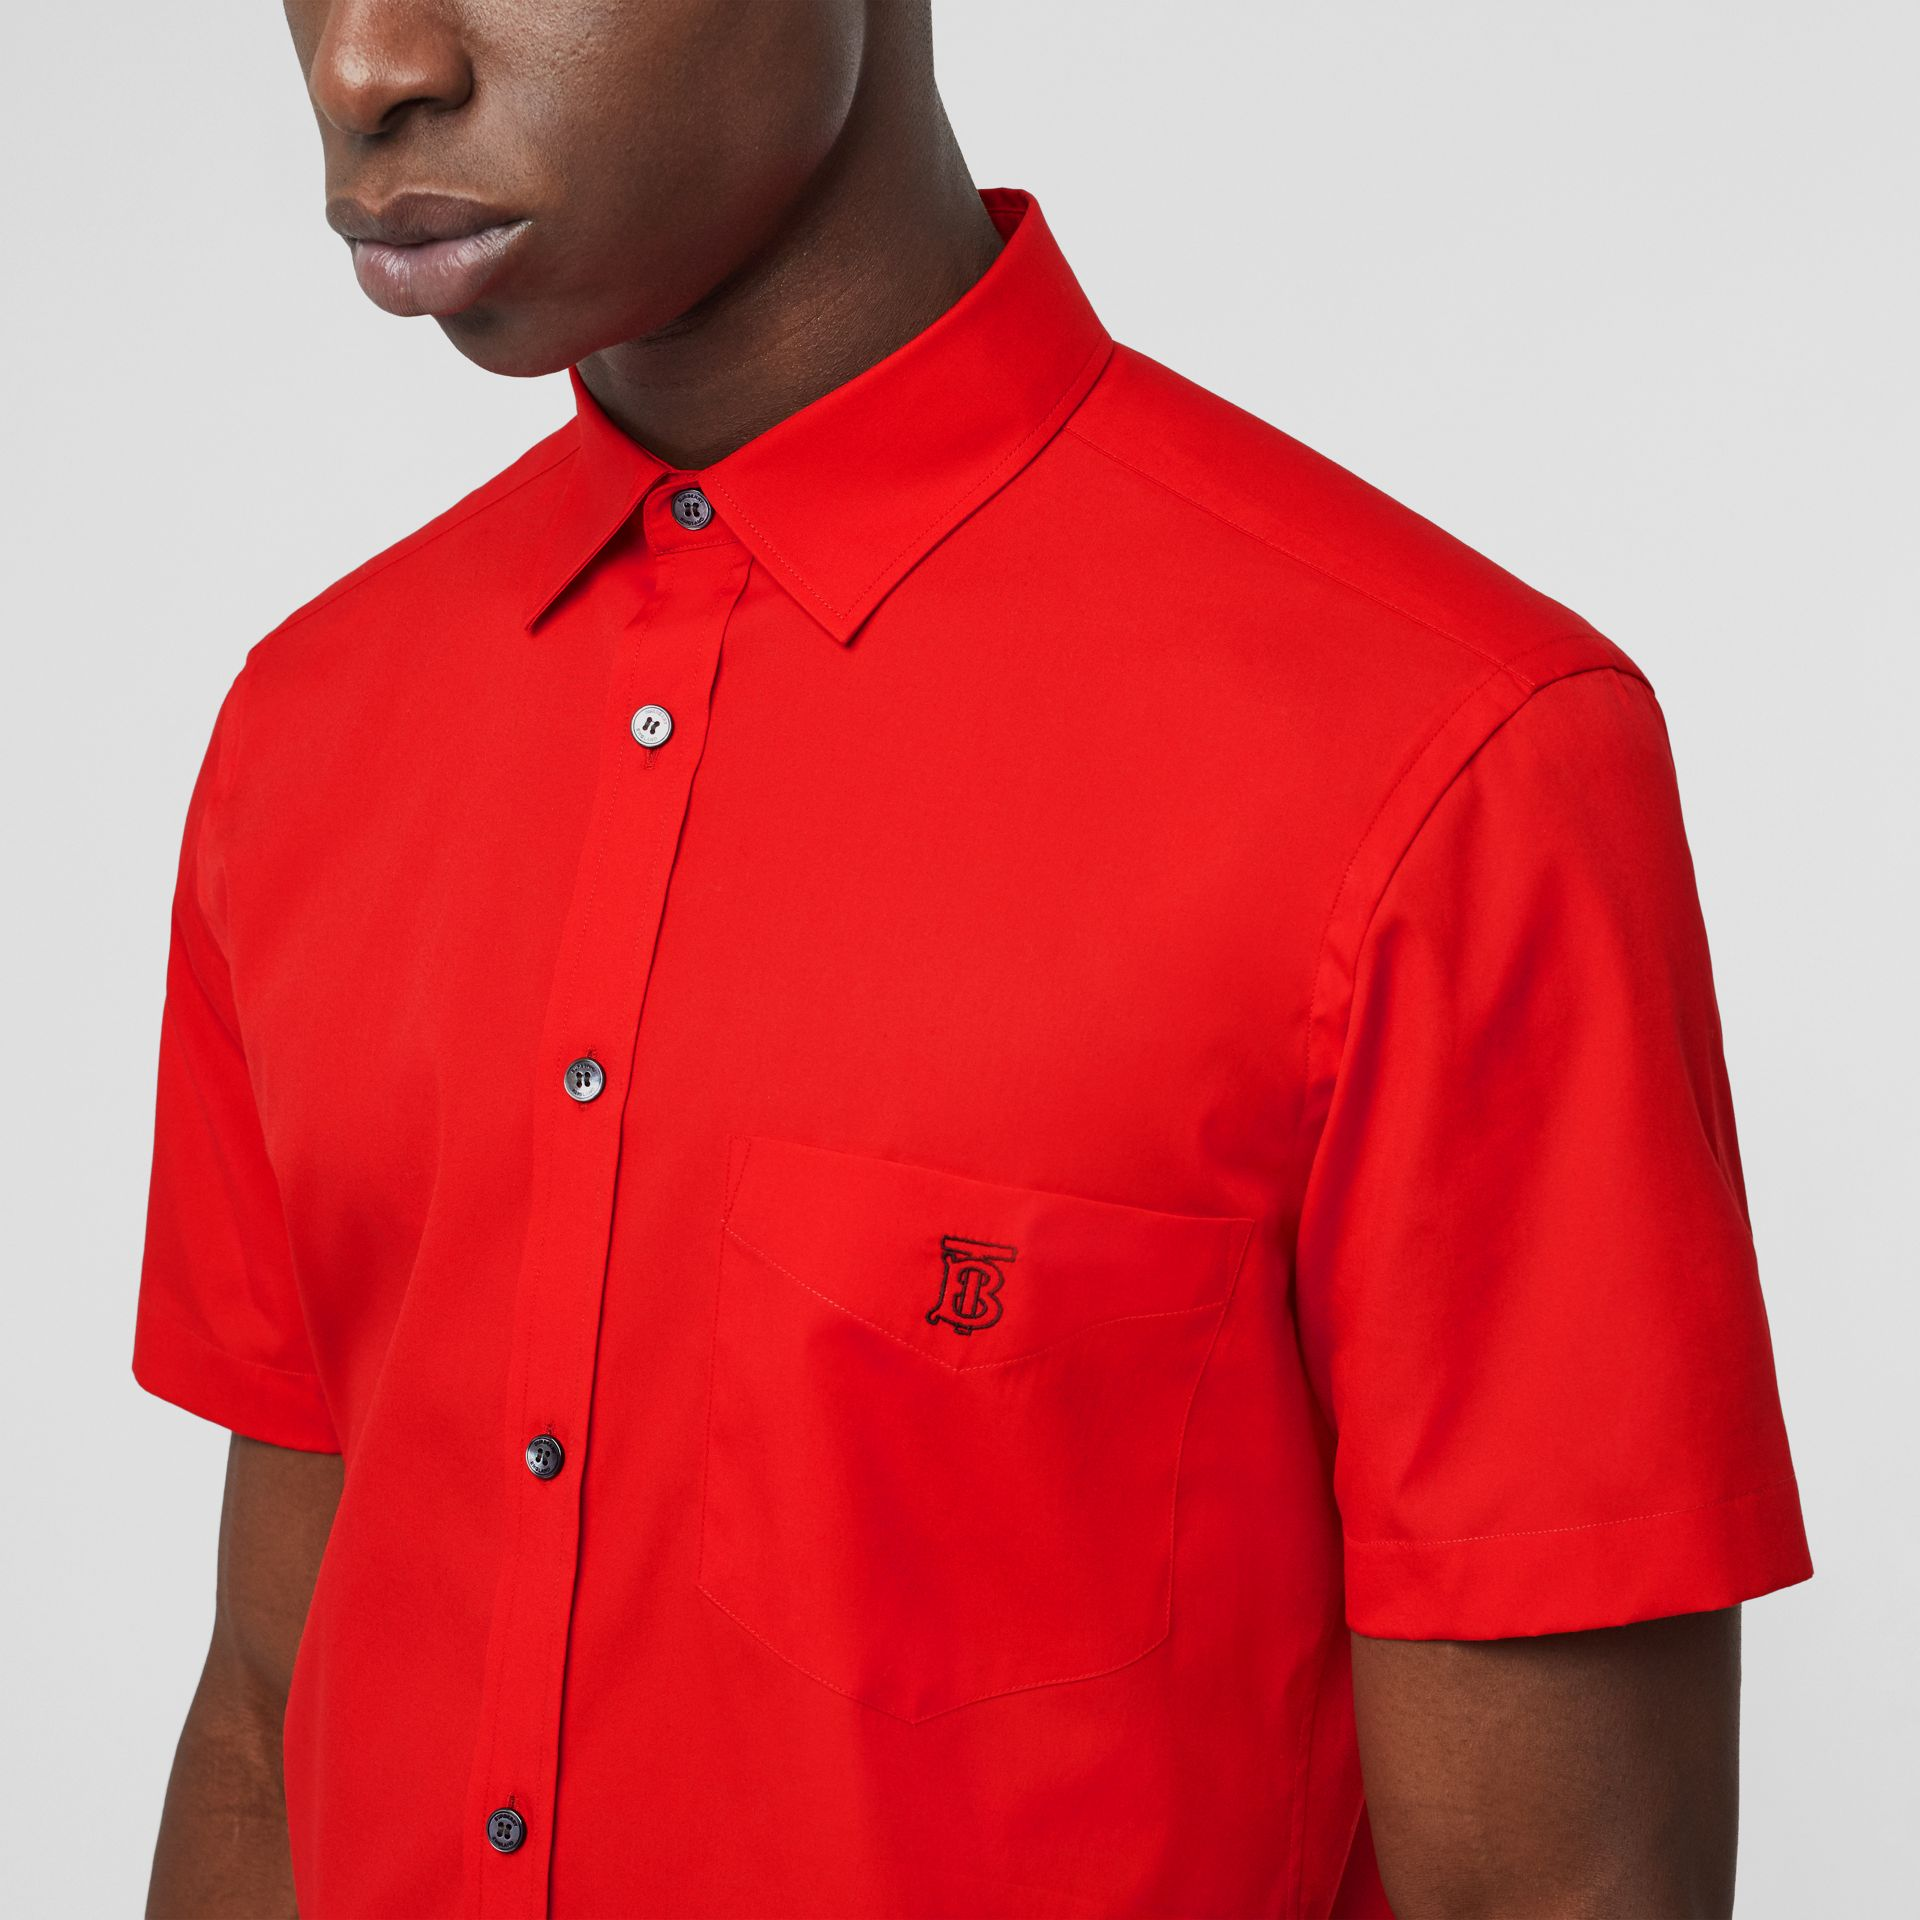 Short-sleeve Monogram Motif Stretch Cotton Shirt in Bright Red - Men | Burberry - gallery image 1